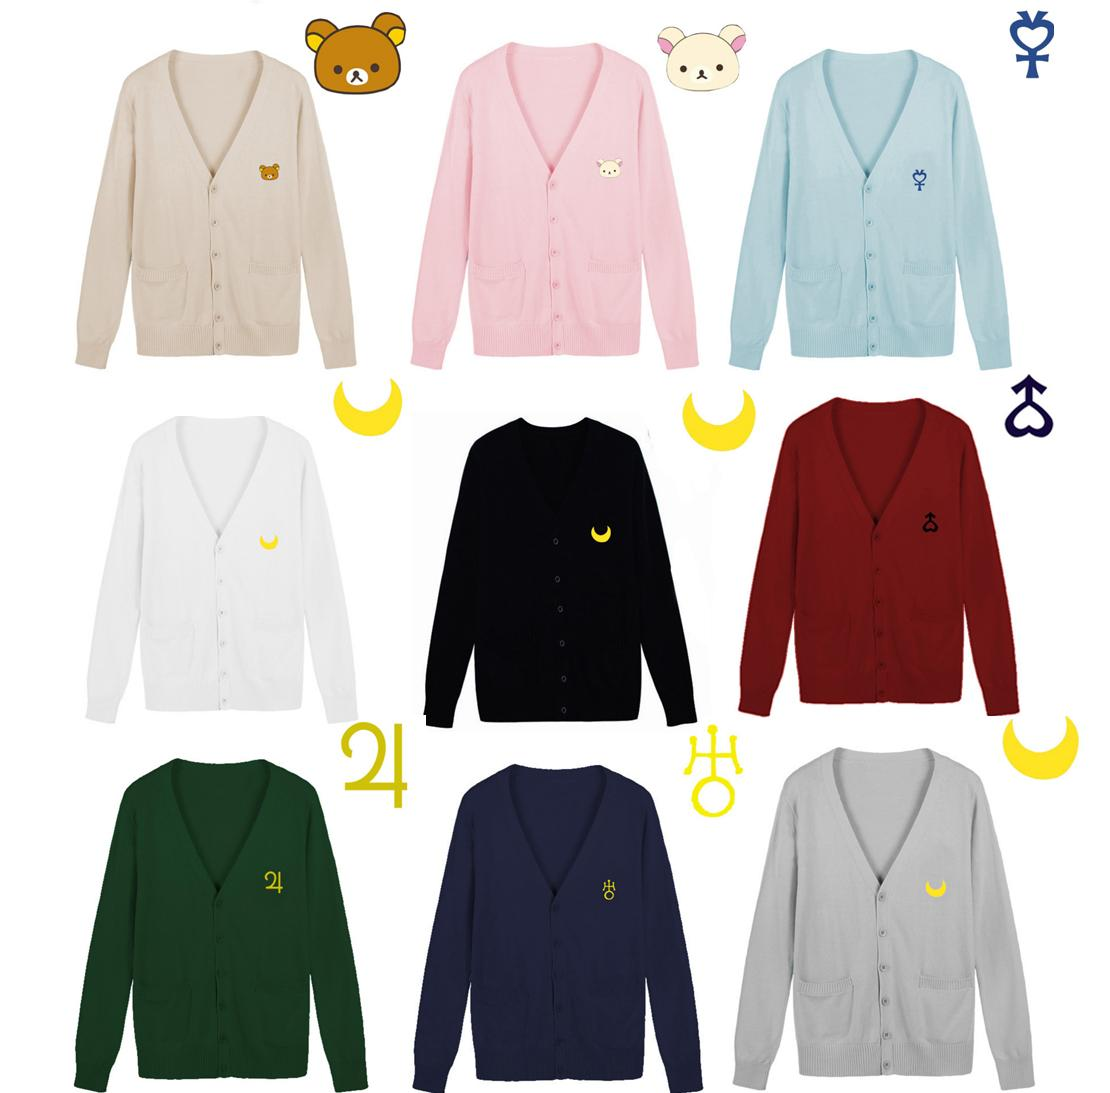 S--XXL Sailor Moon Bear Embroidery JK Uniform Knitting Cardigan